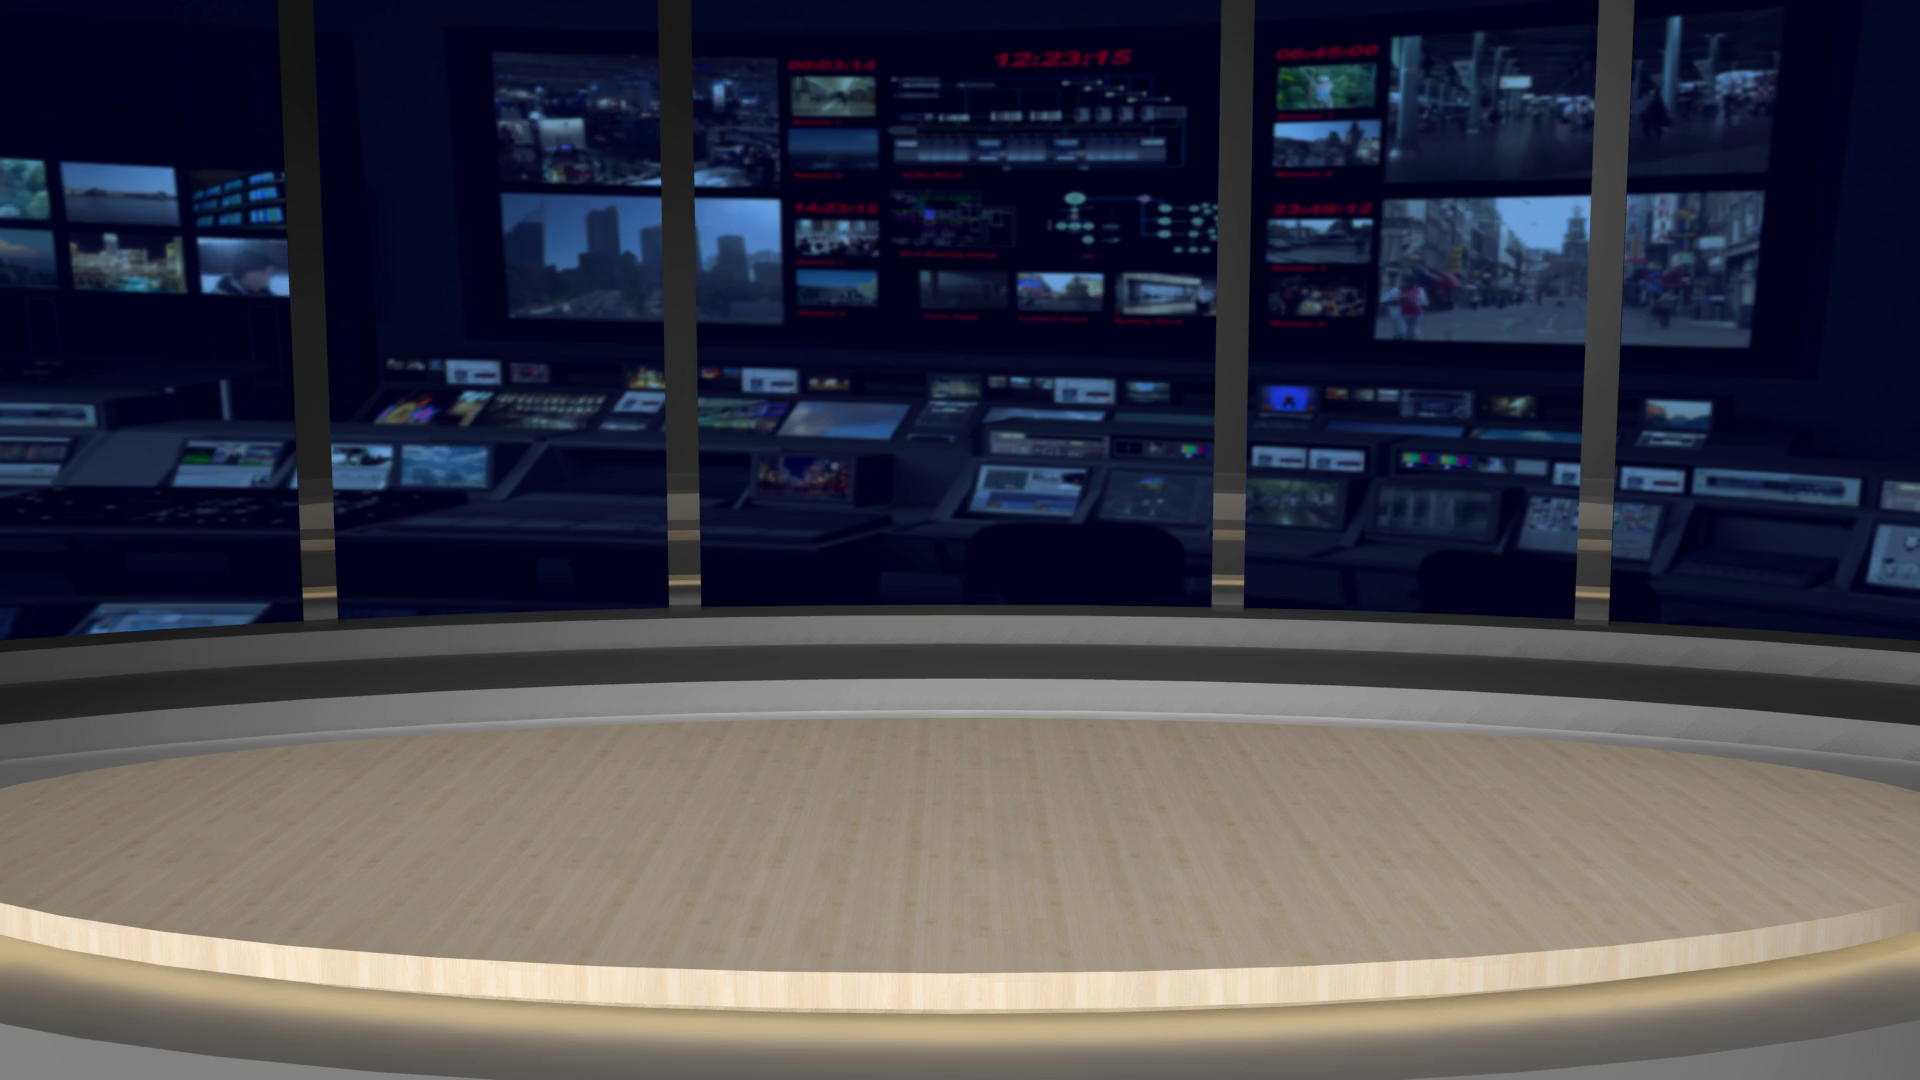 Animated Virtual Set Studio AnimSet 002 Wide Shot News Set with Animated  Screens in Background Motion Background.